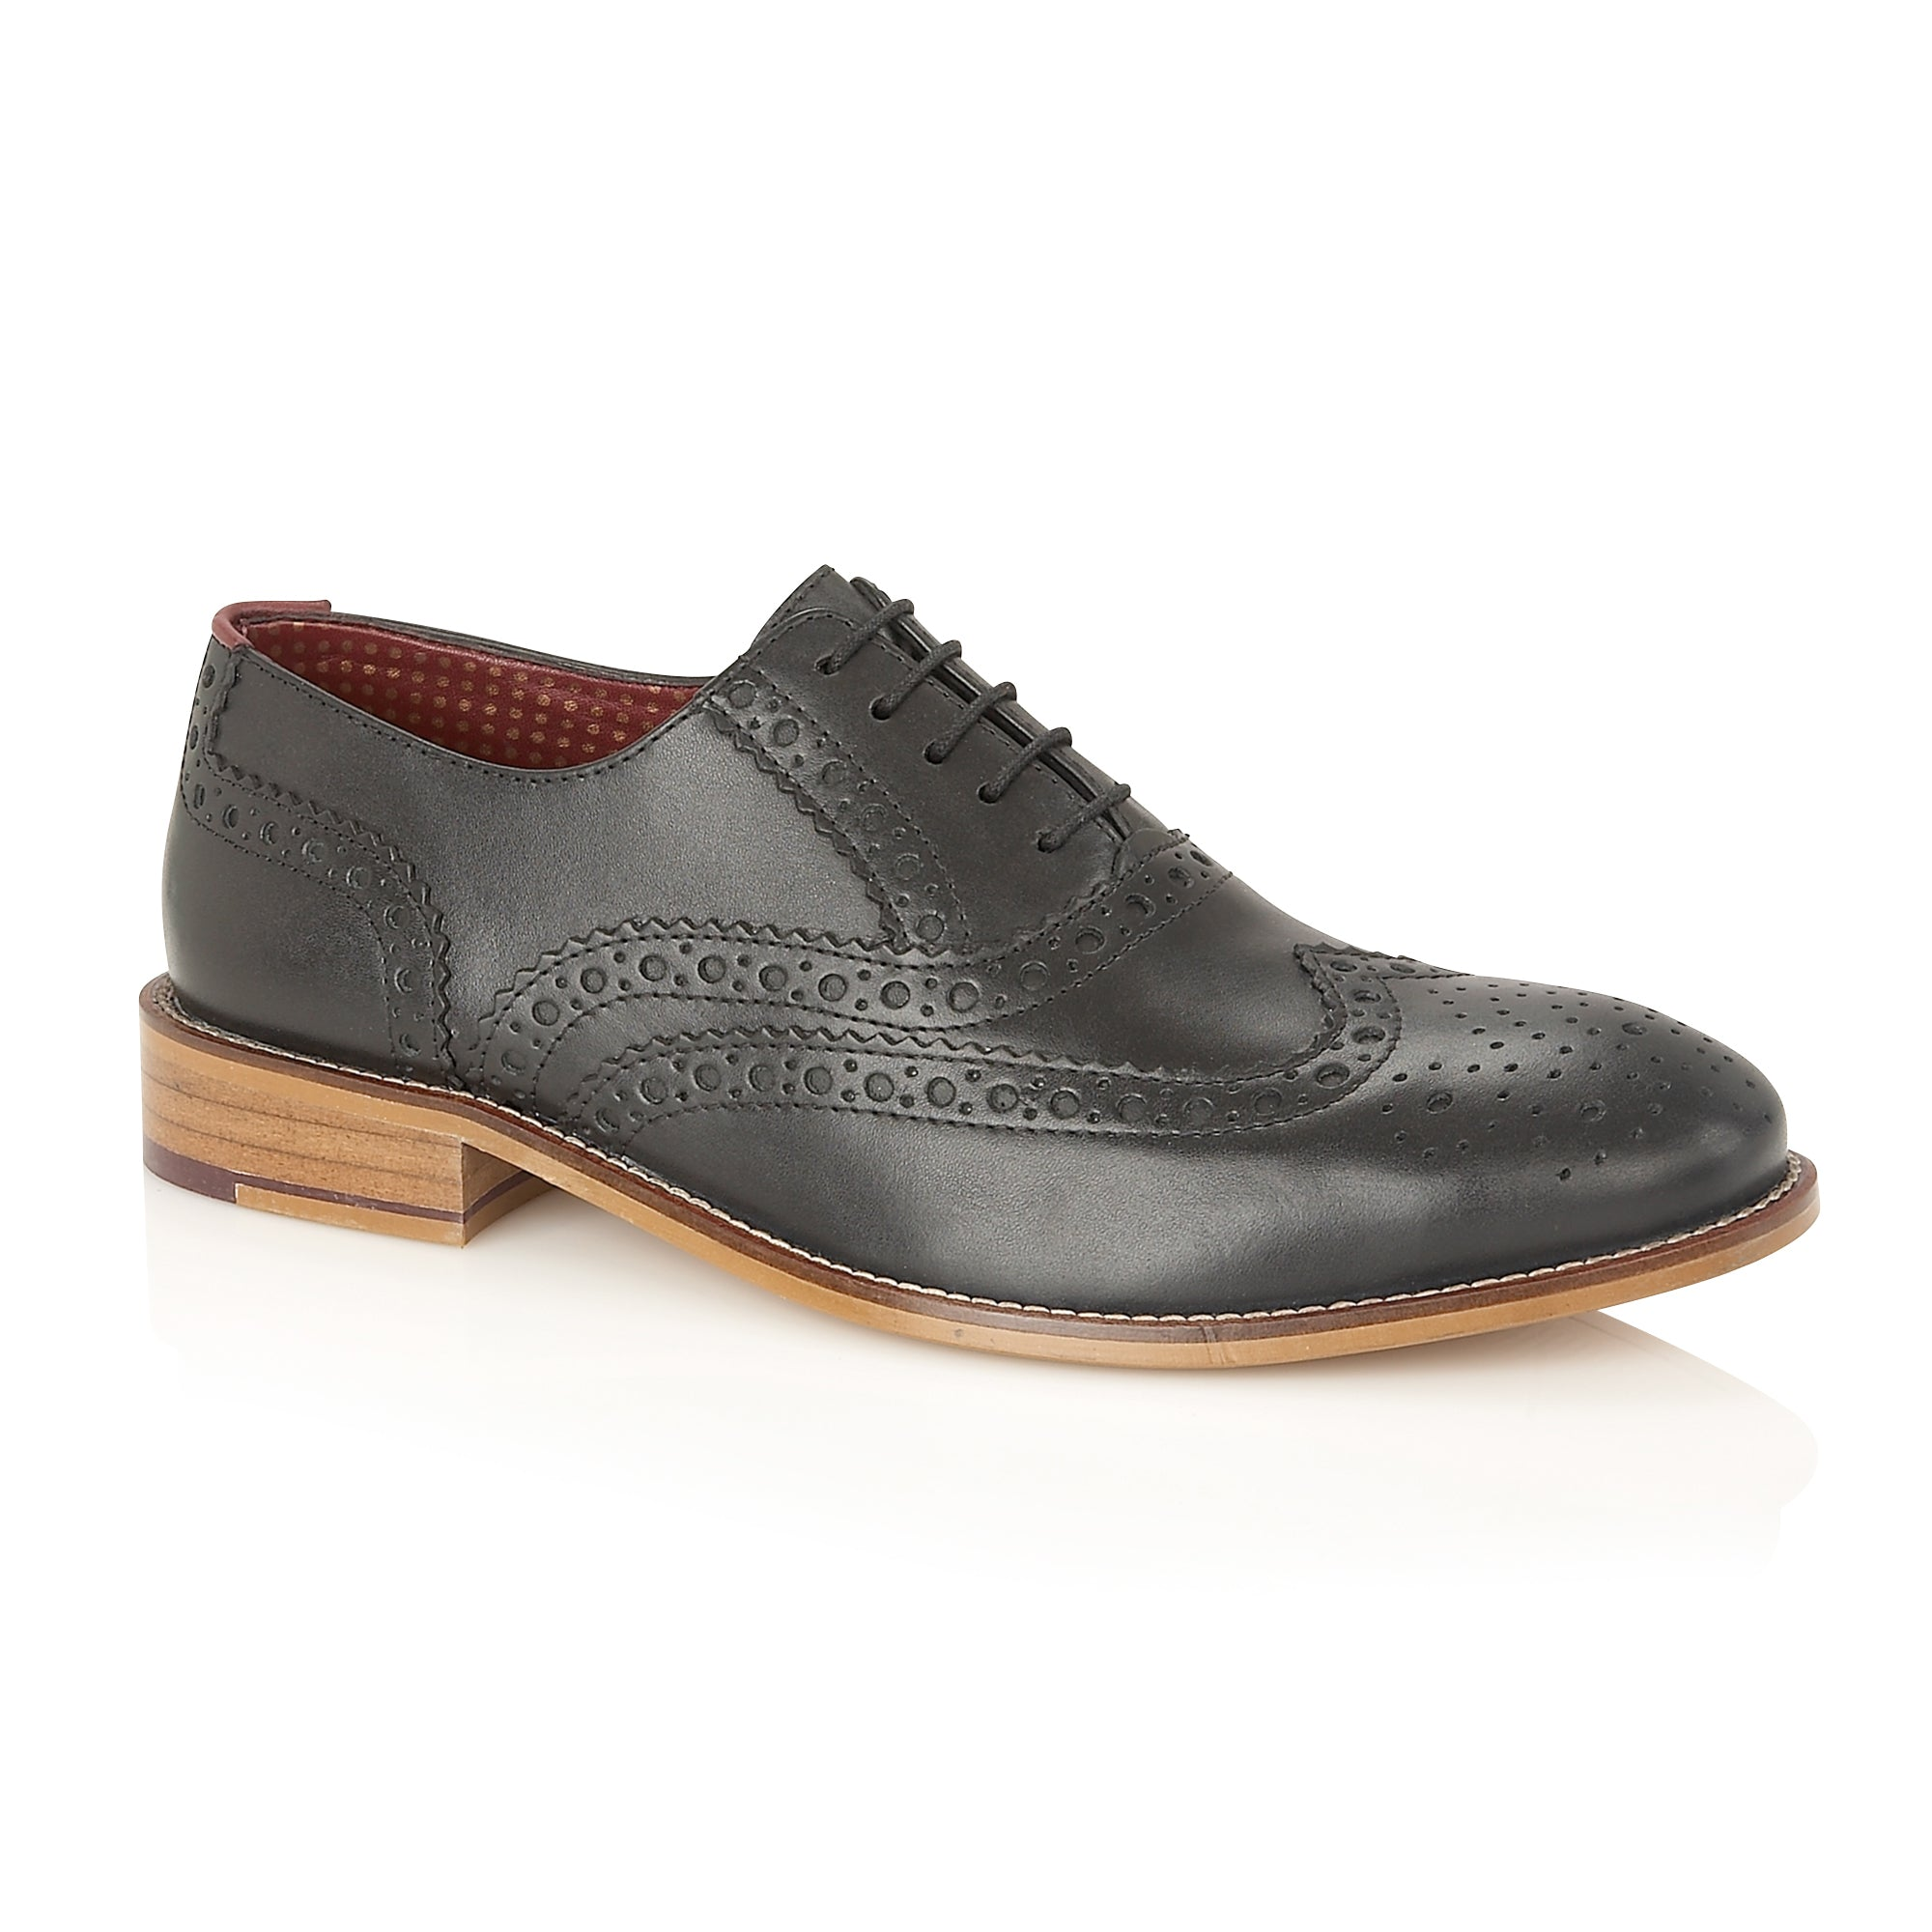 Gatsby Leather Brogue Black - Wide Fit, Shoes, London Brogues  - London Brogues